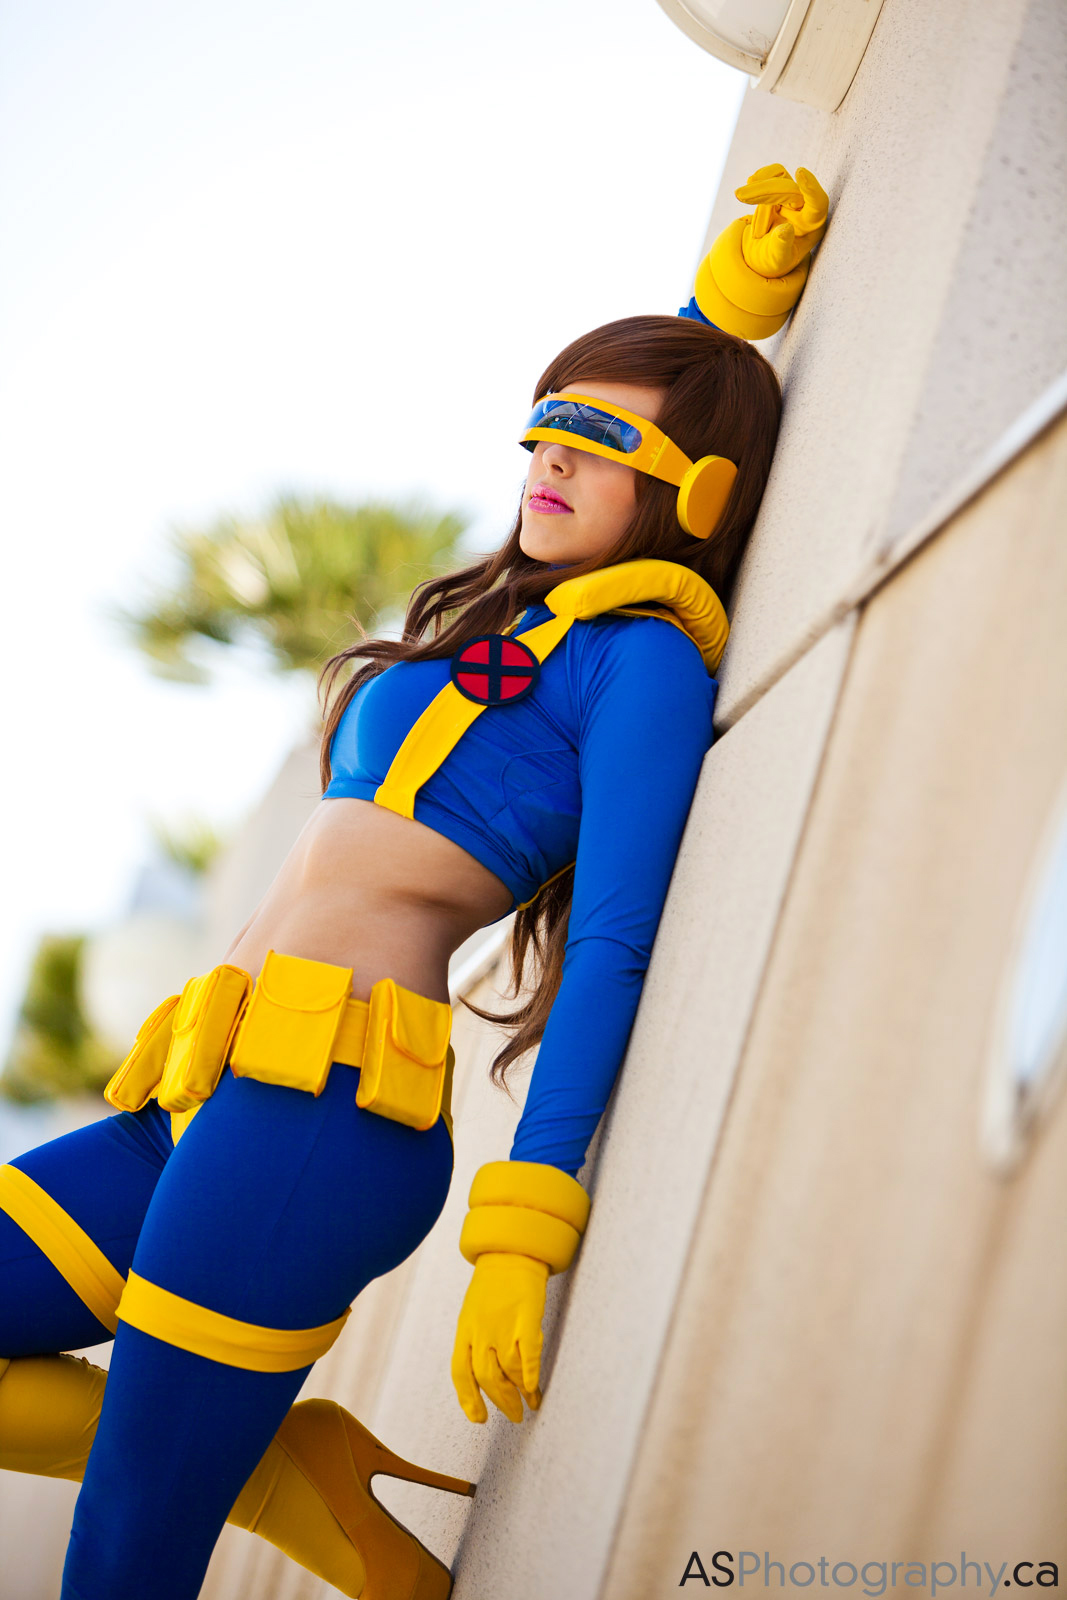 27 - 31 Examples Of Cosplay Done Right